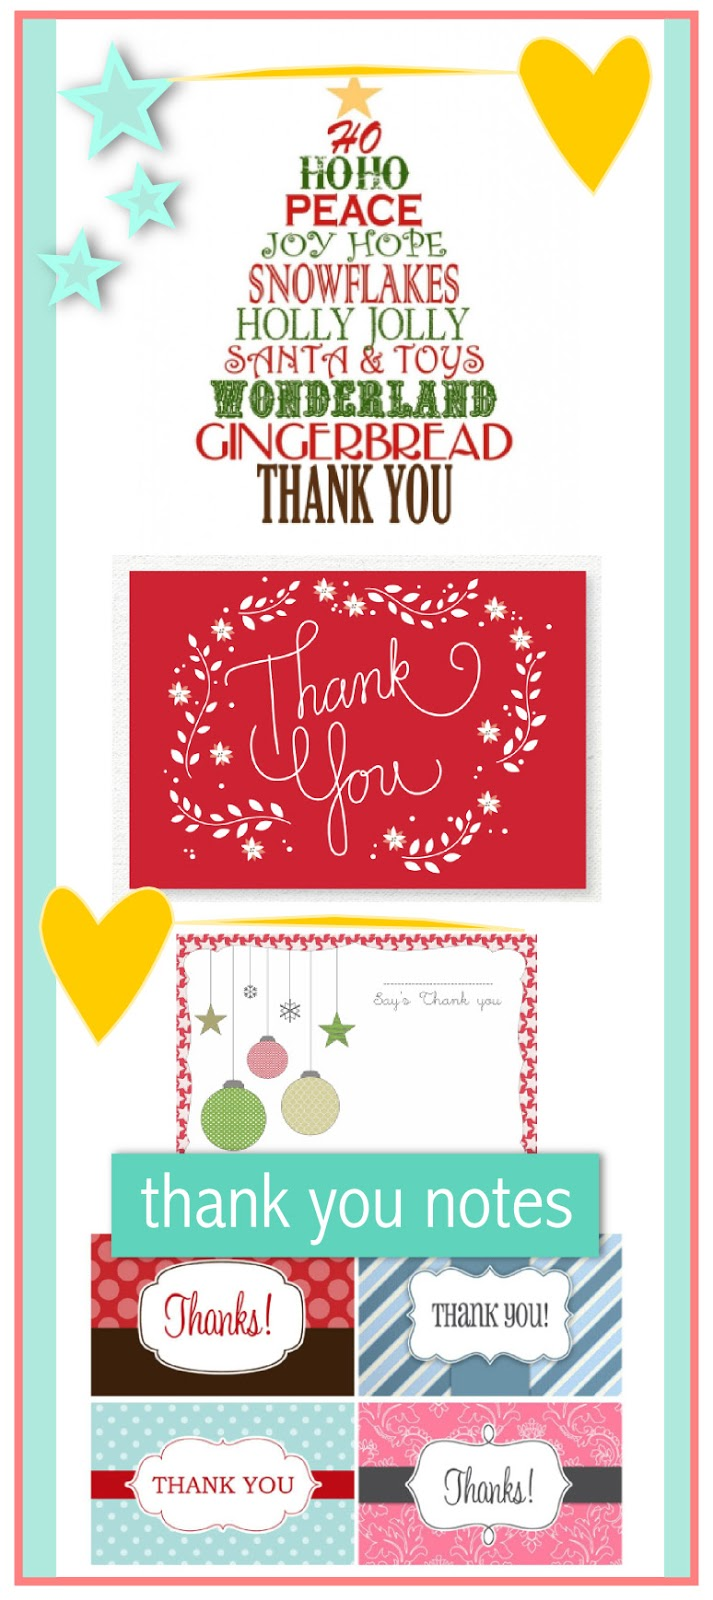 Ne homas furthermore Daisy Duck Wallpaper furthermore Simple Country Kitchen Cabi s 2 also 1920x1080 furthermore 10 Free Printable Christmas Thank You. on christmas coloring pages beautiful